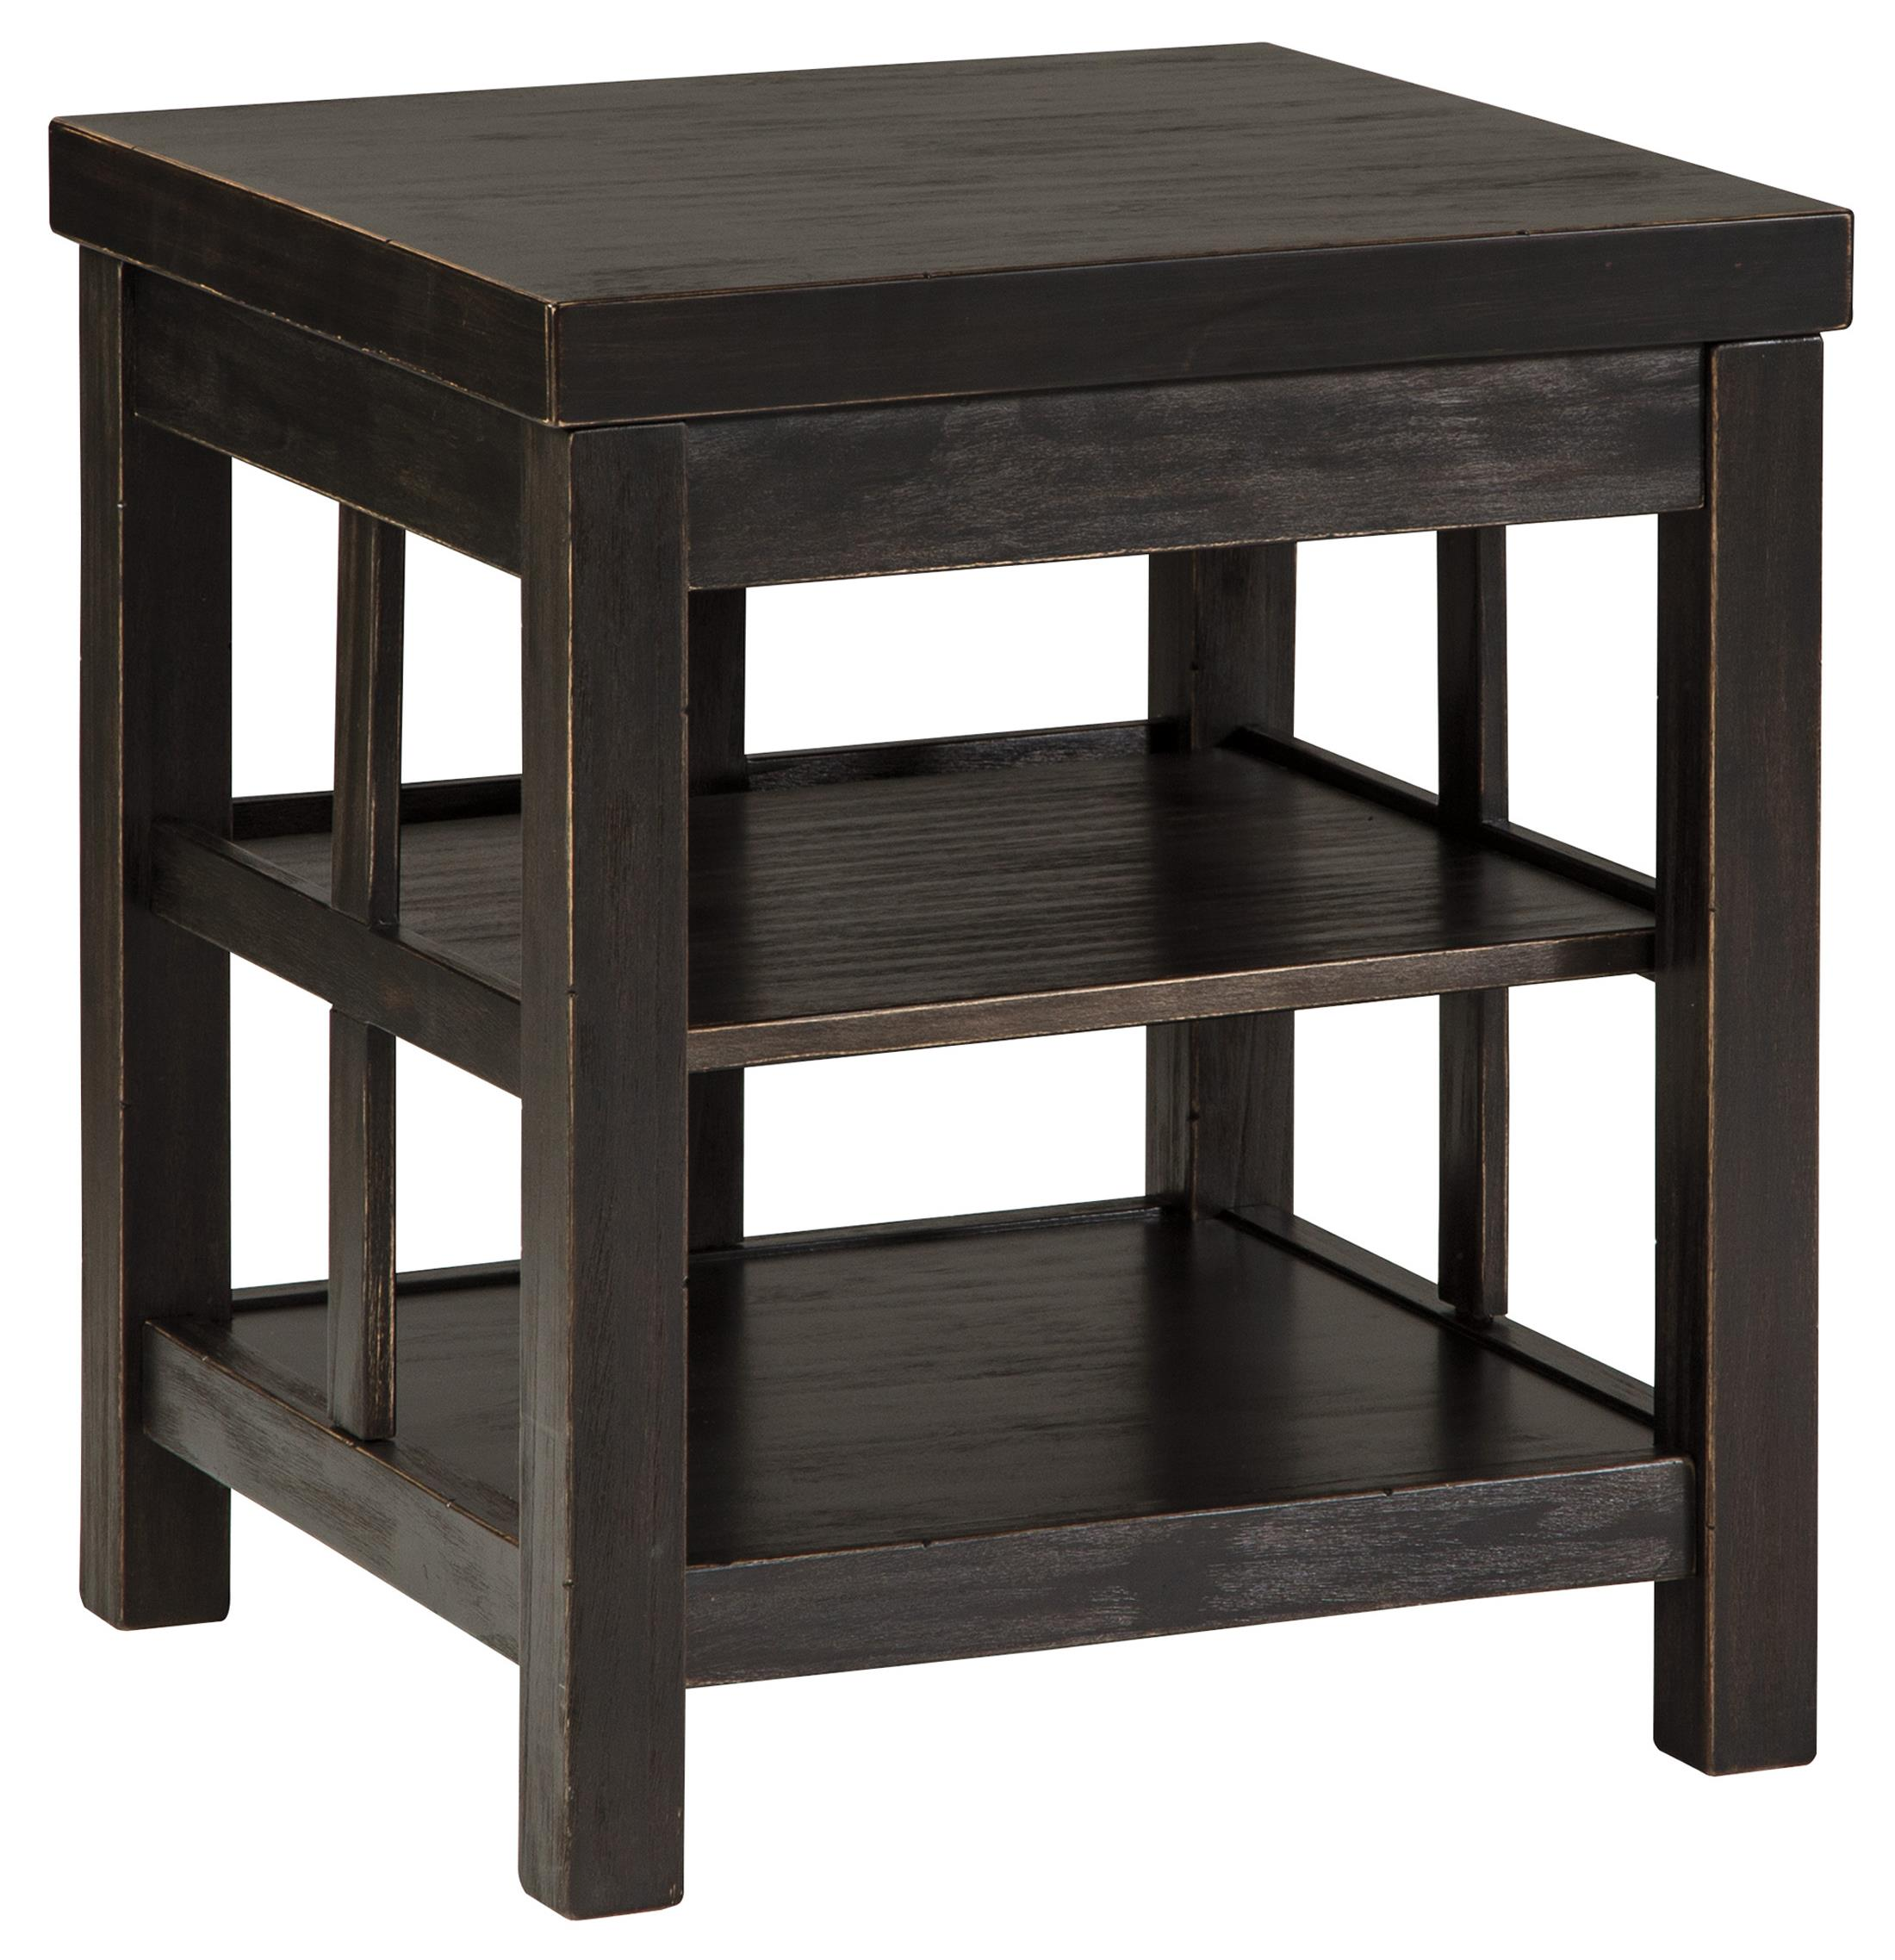 Gavelston End Table by Signature Design by Ashley at Red Knot